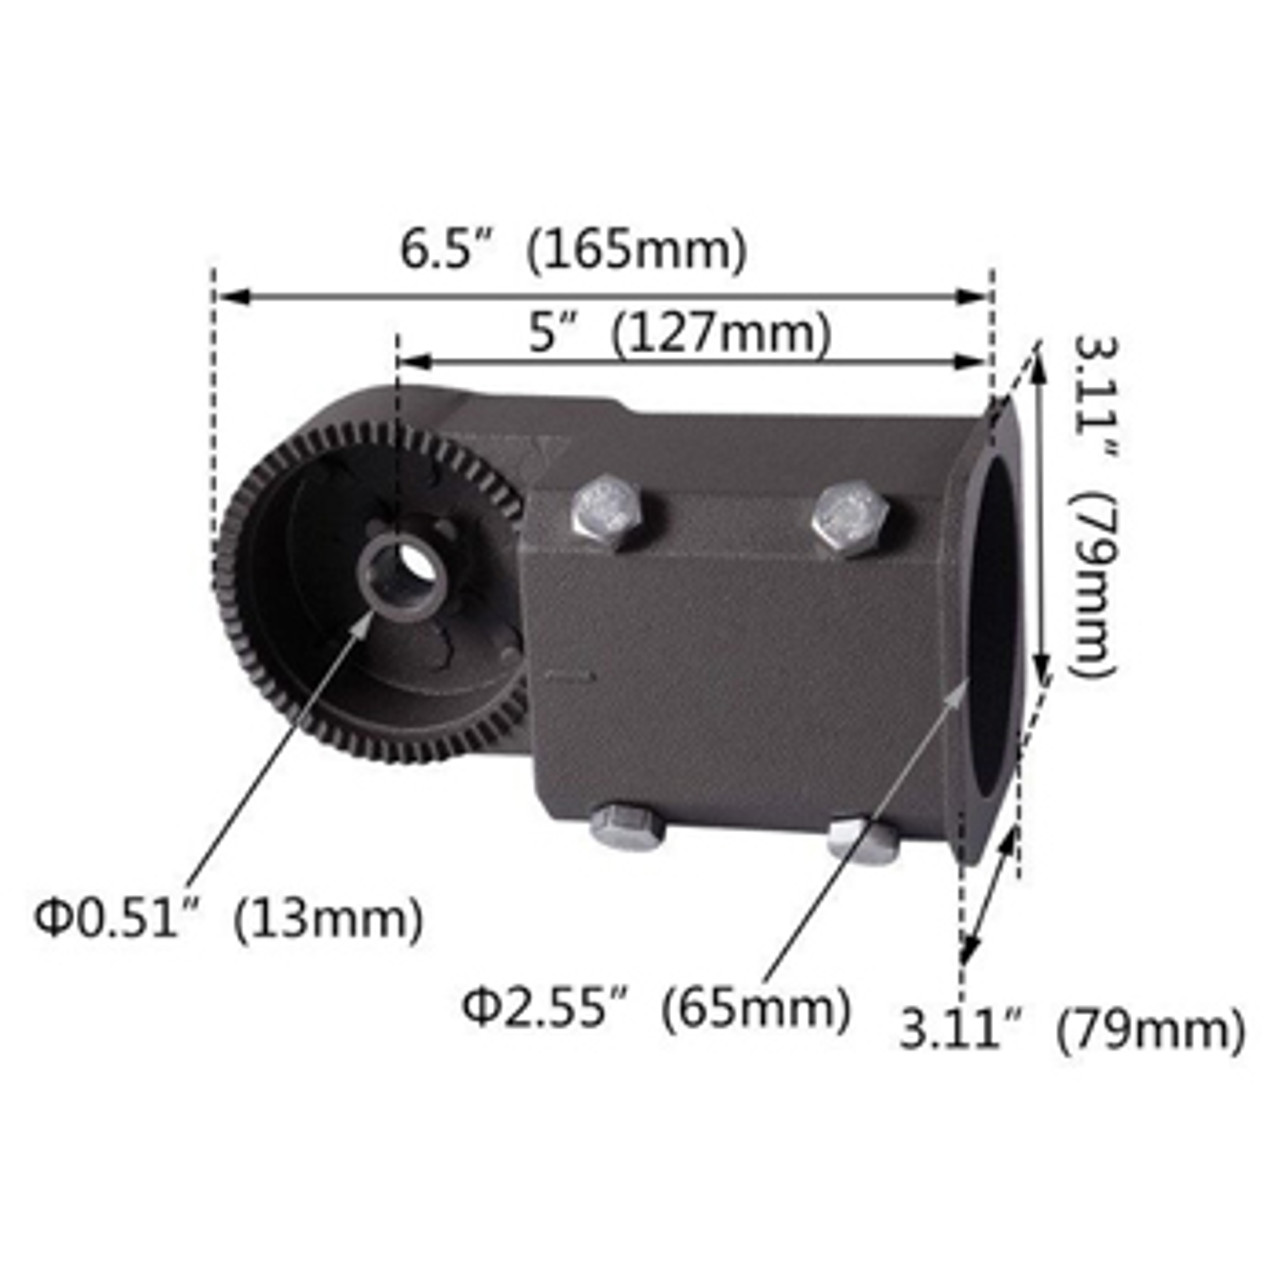 Adjustable Mount Slip Fitter Dimensions